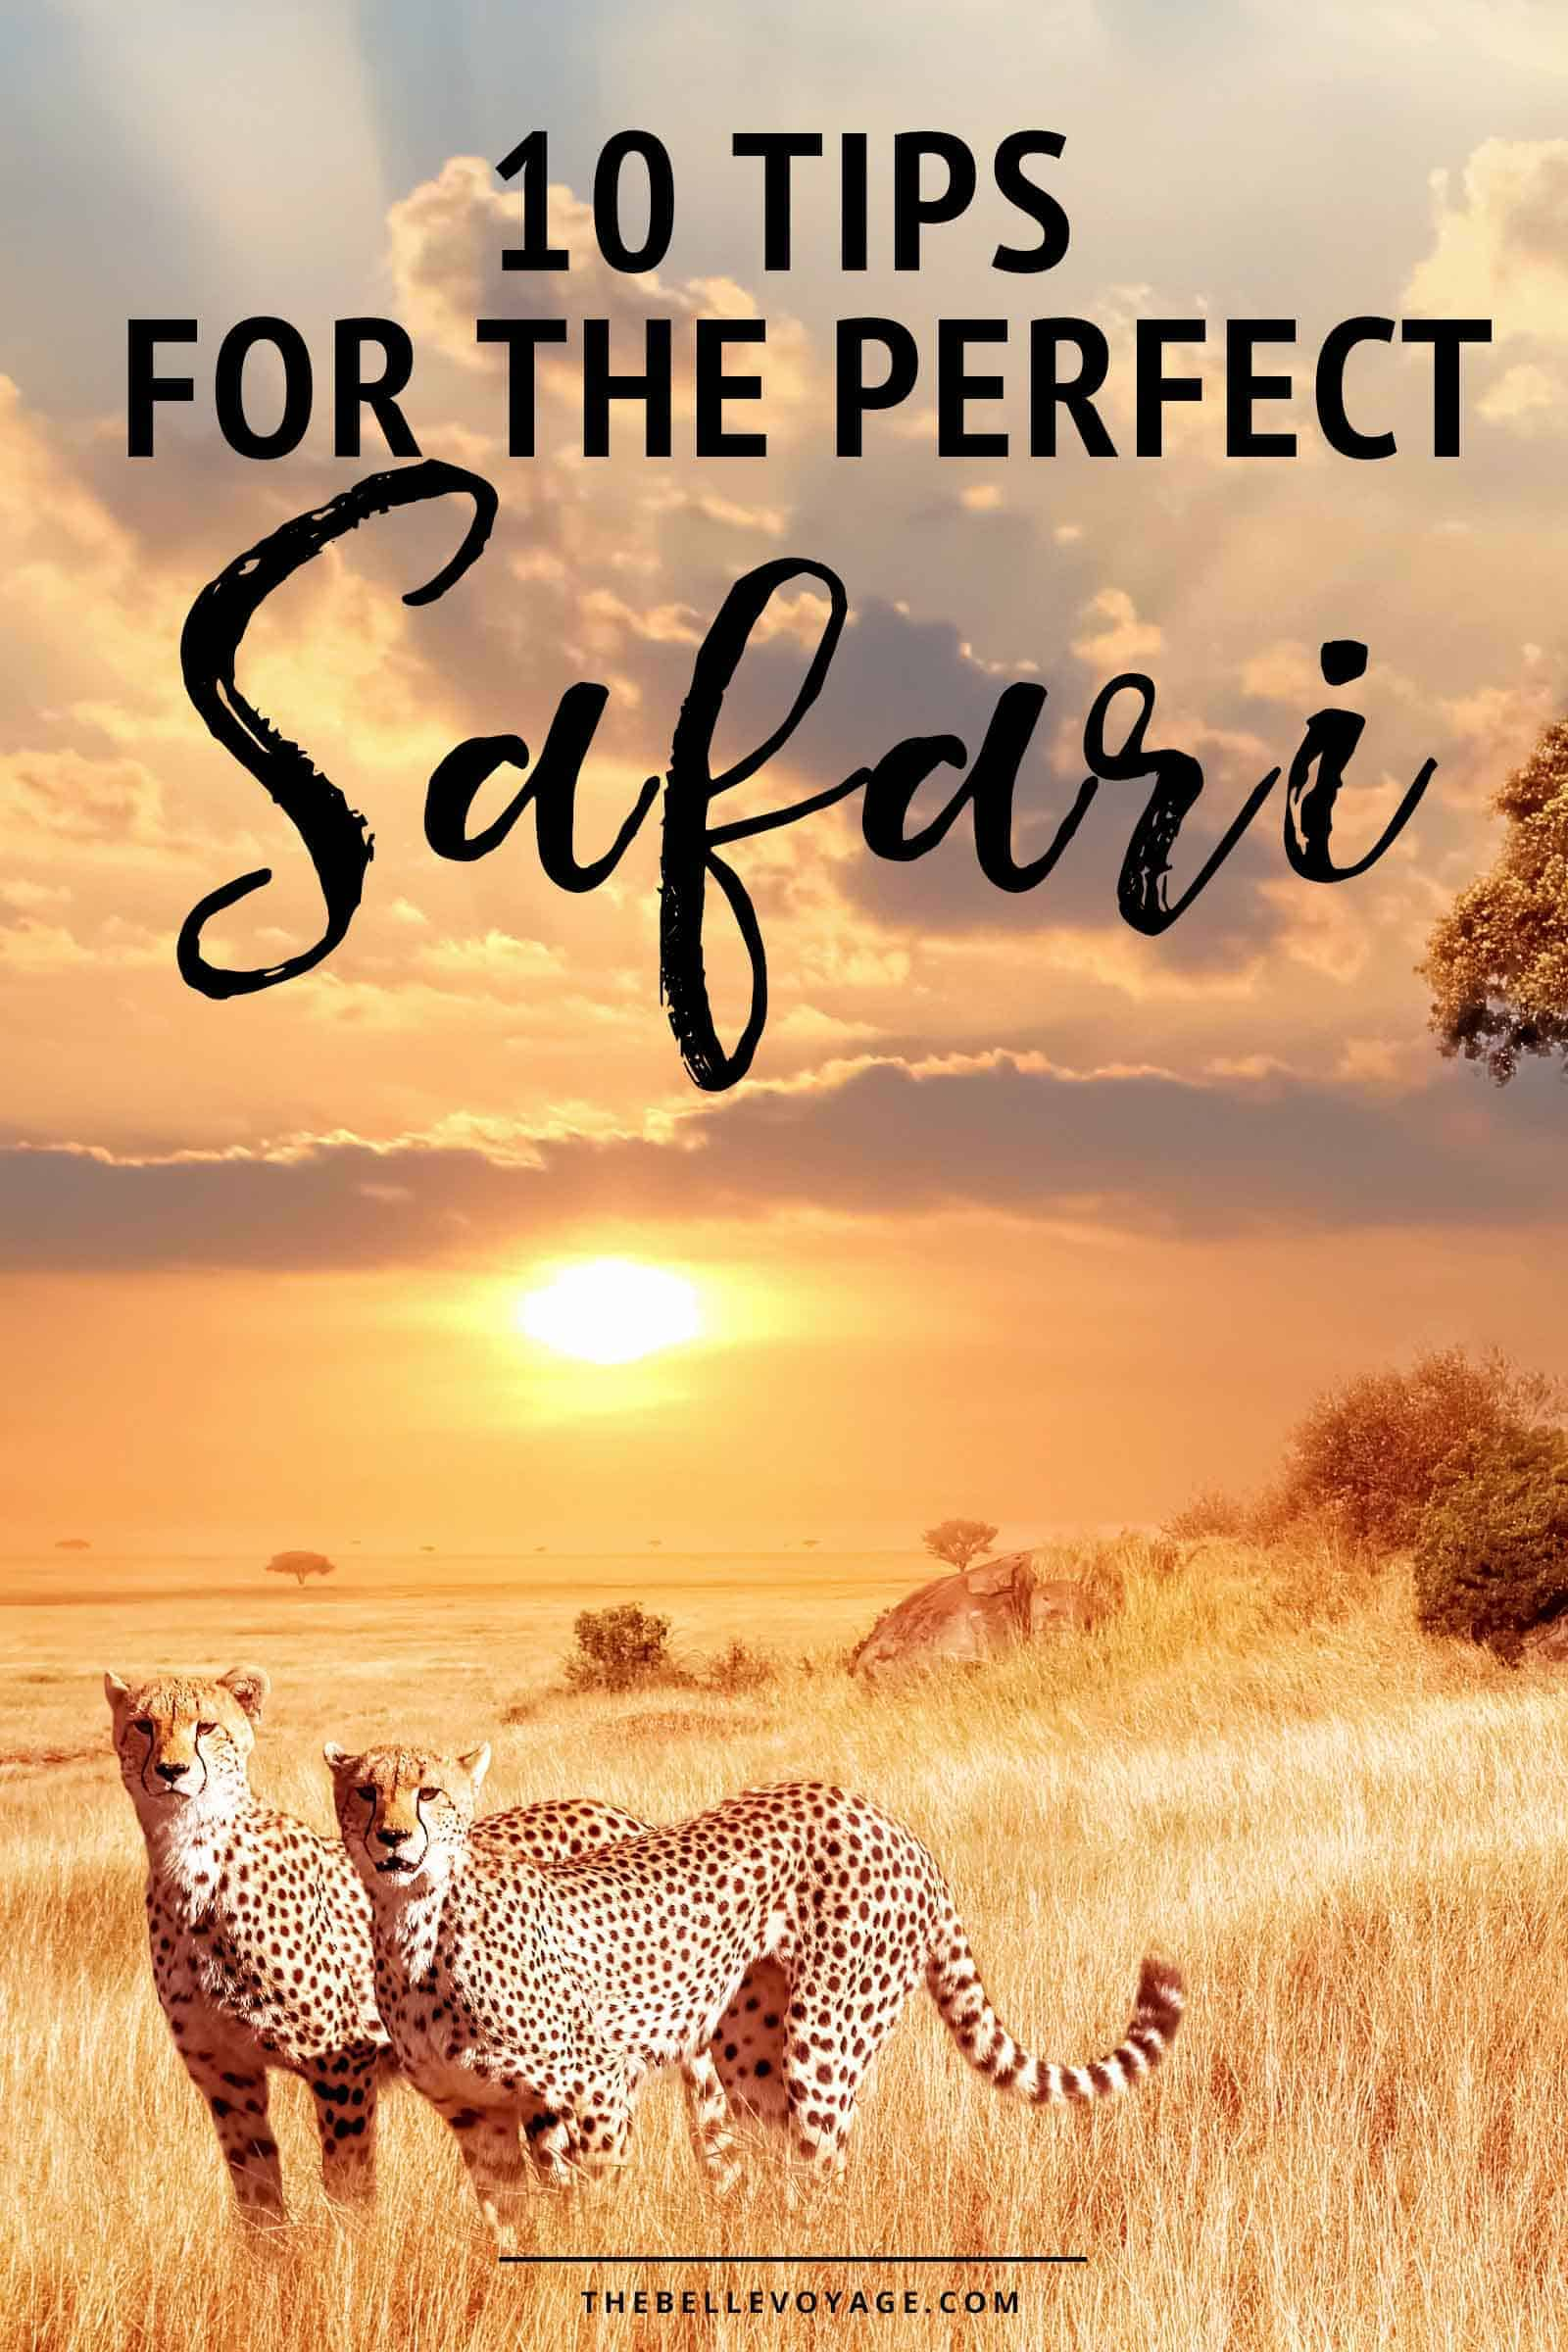 African safari tips | Things to know before your first African safari | Safari vacation tips | Planning the perfect safari honeymoon | Travel on an African safari